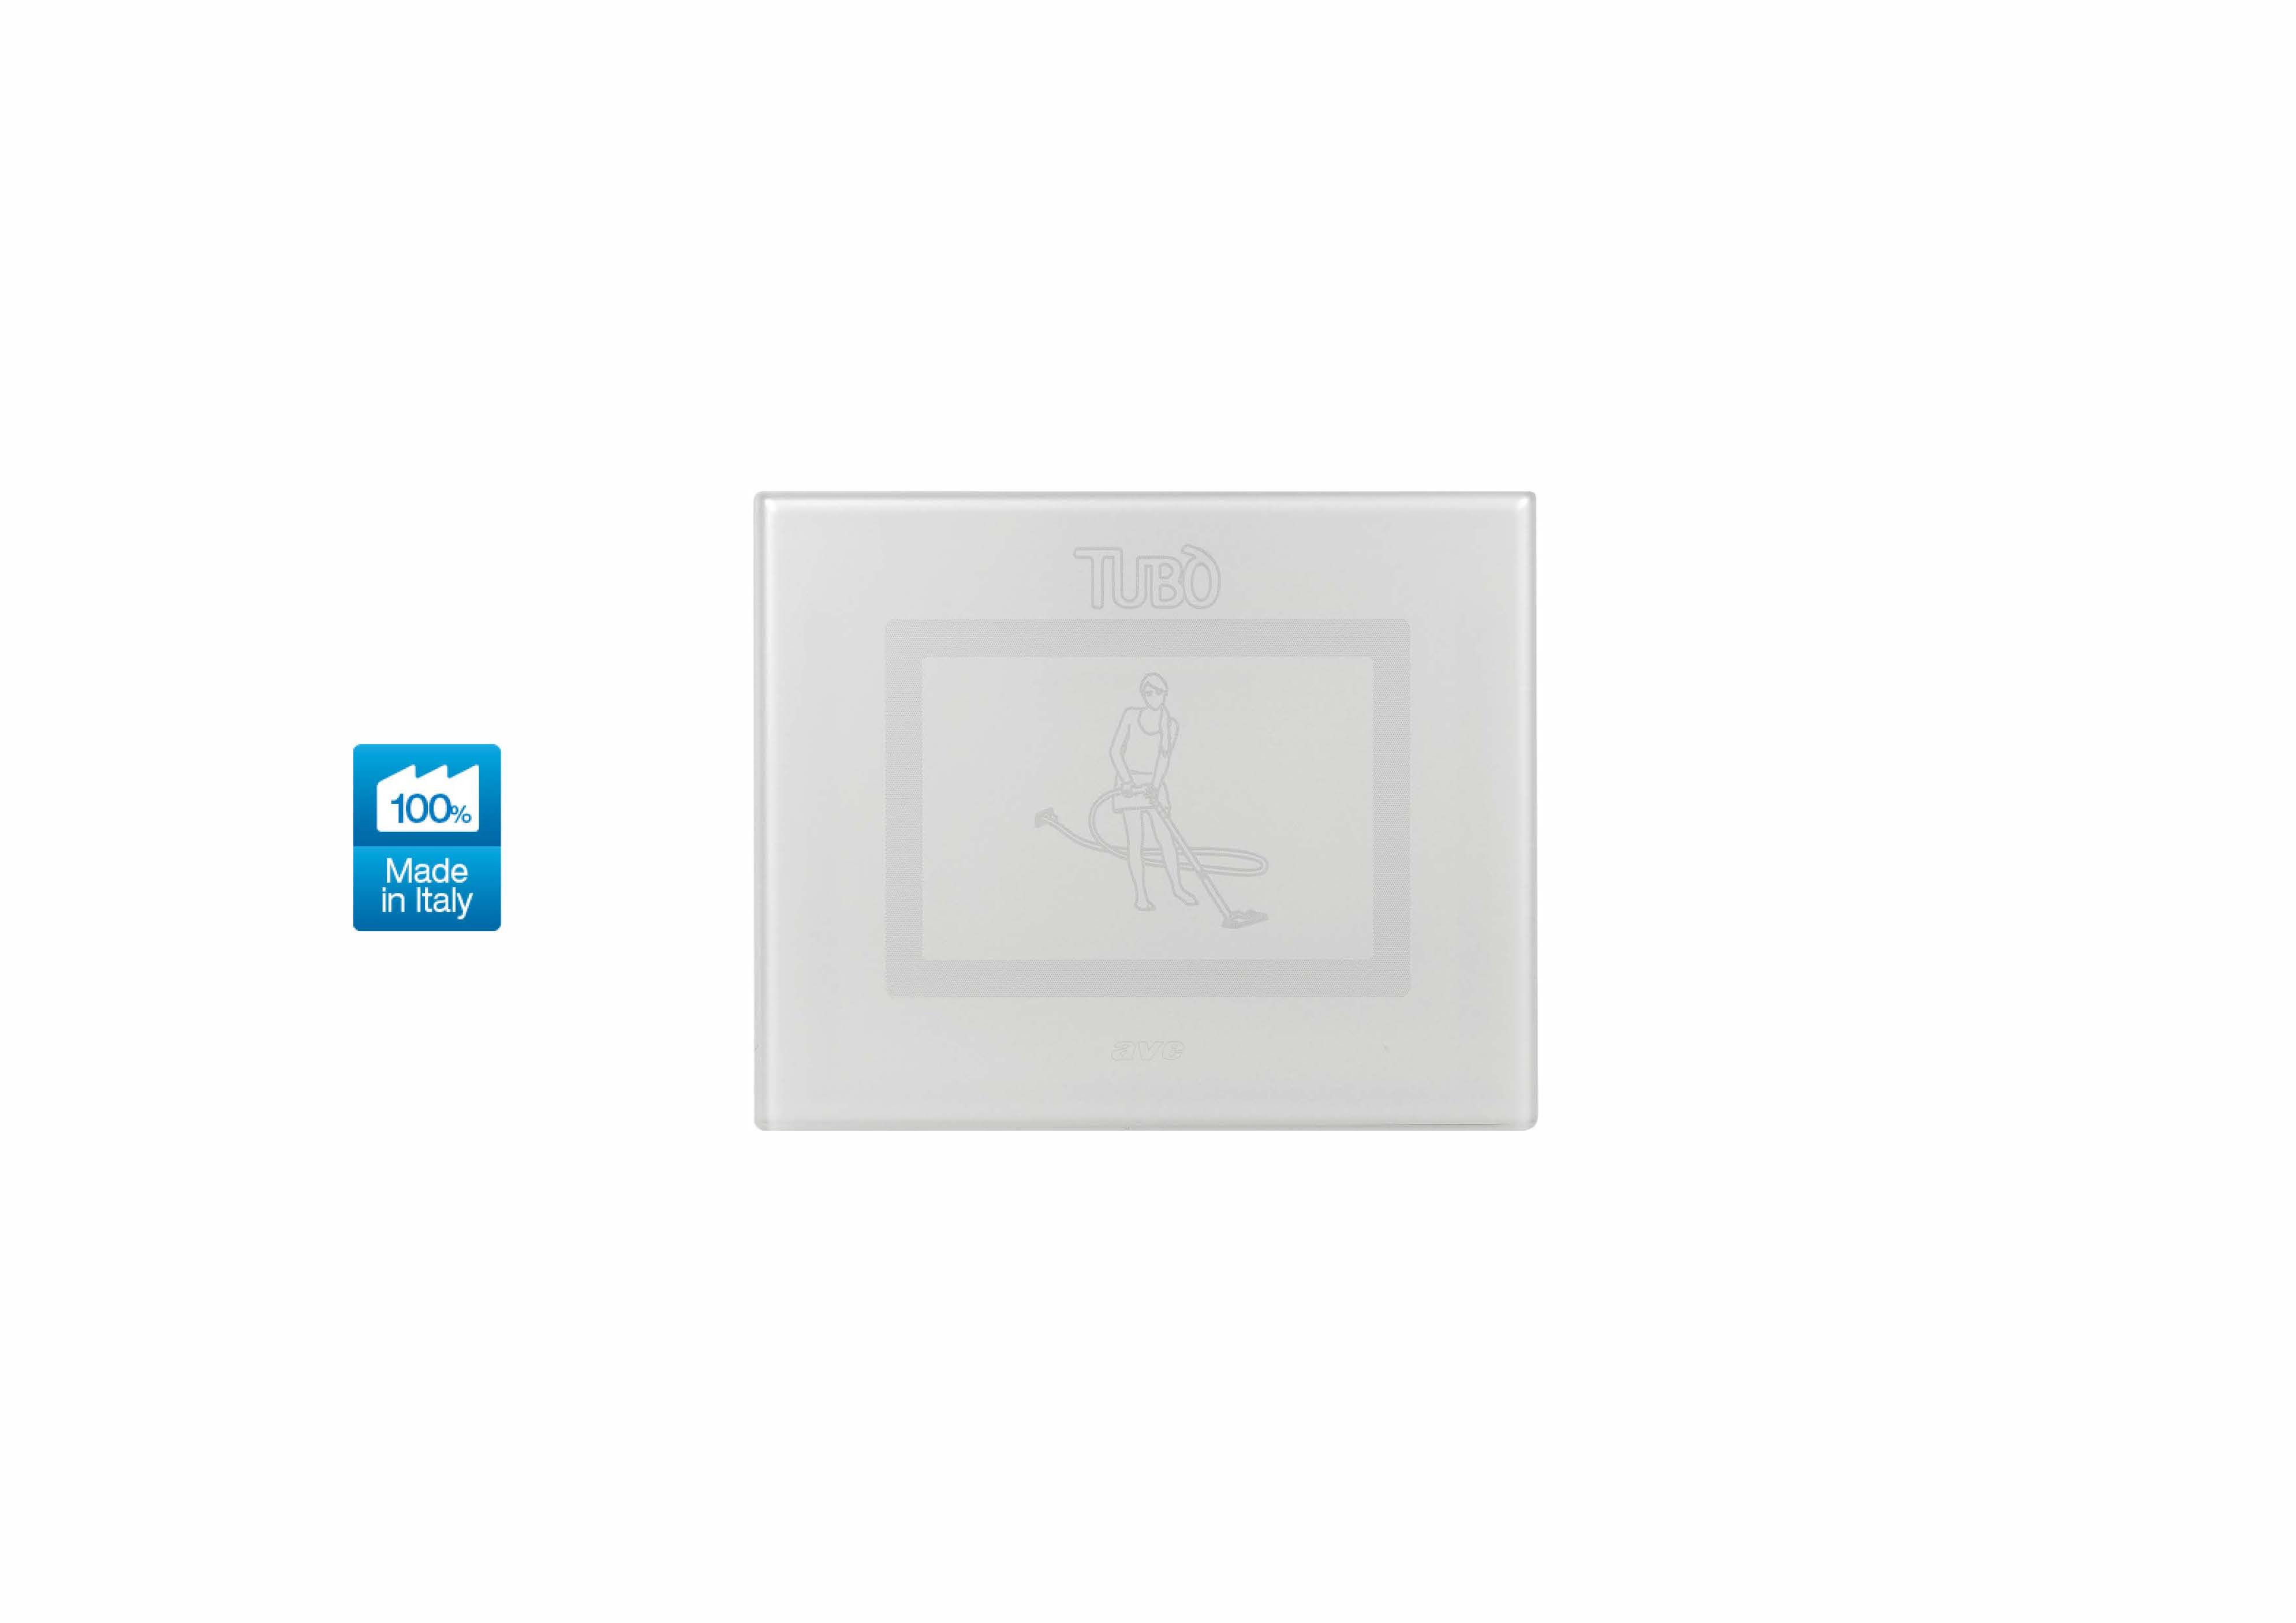 Вакуумна розетка TUBO New Air Touch, Ave Systema 44 glossy white